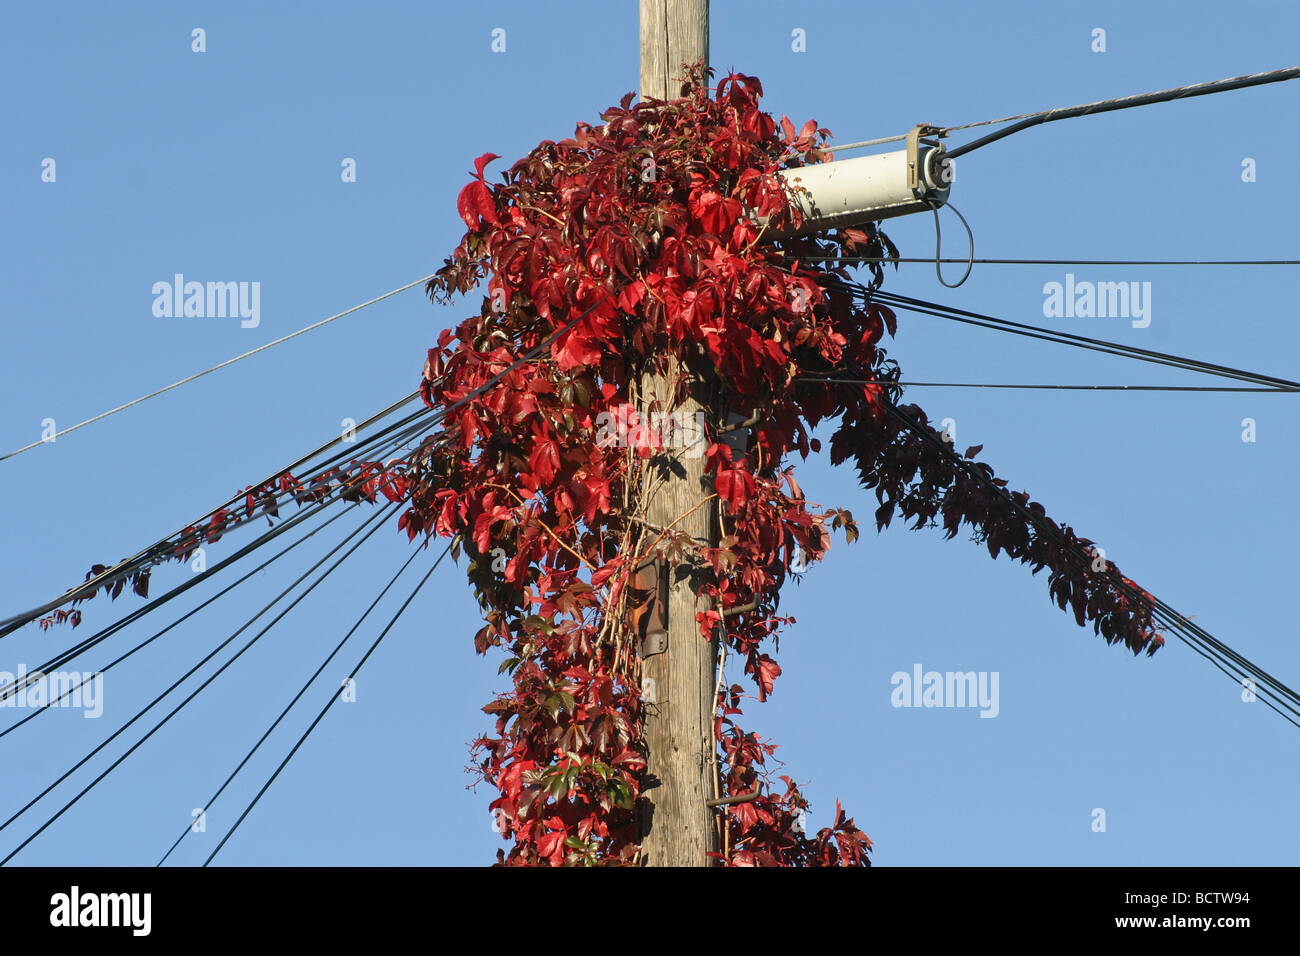 autumn red ivy leaves on a telephone pole with wires Stock Photo ...